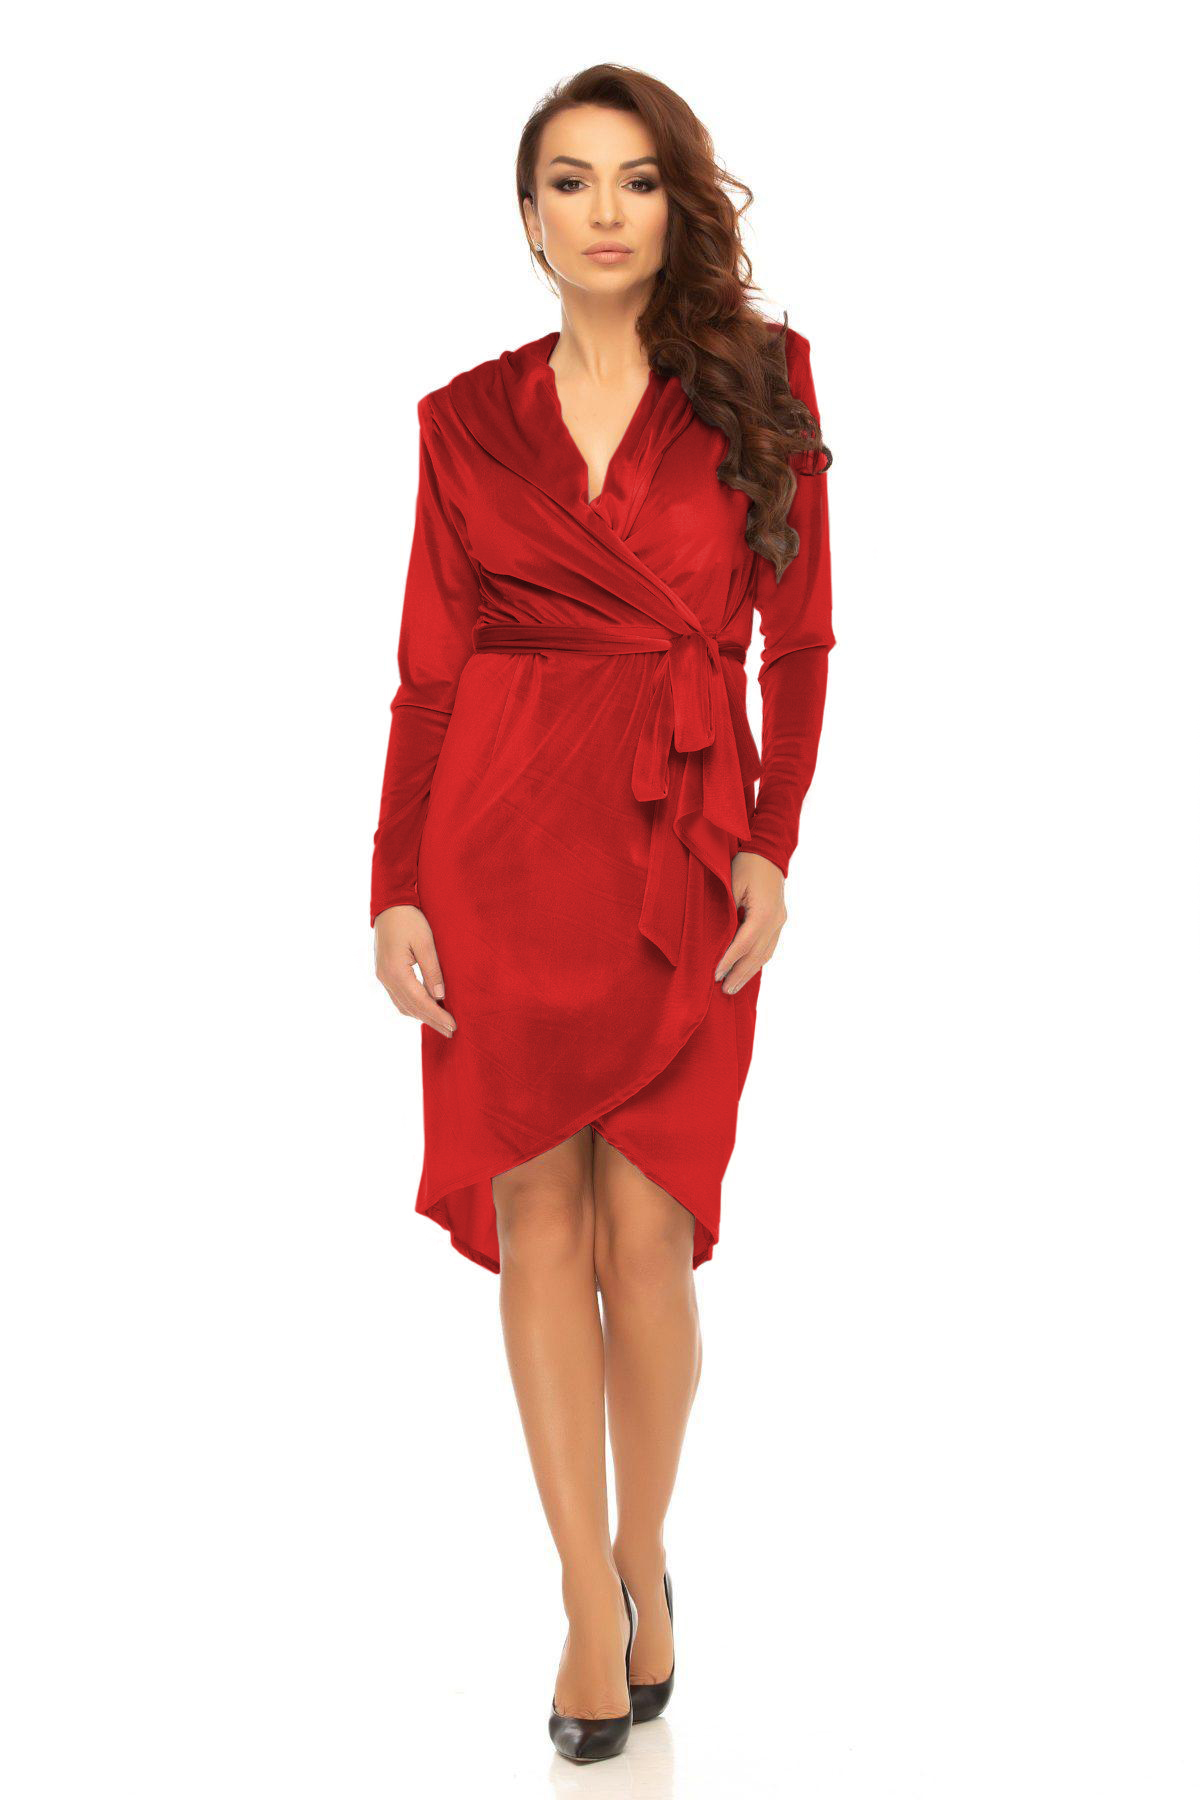 I8A4064-red